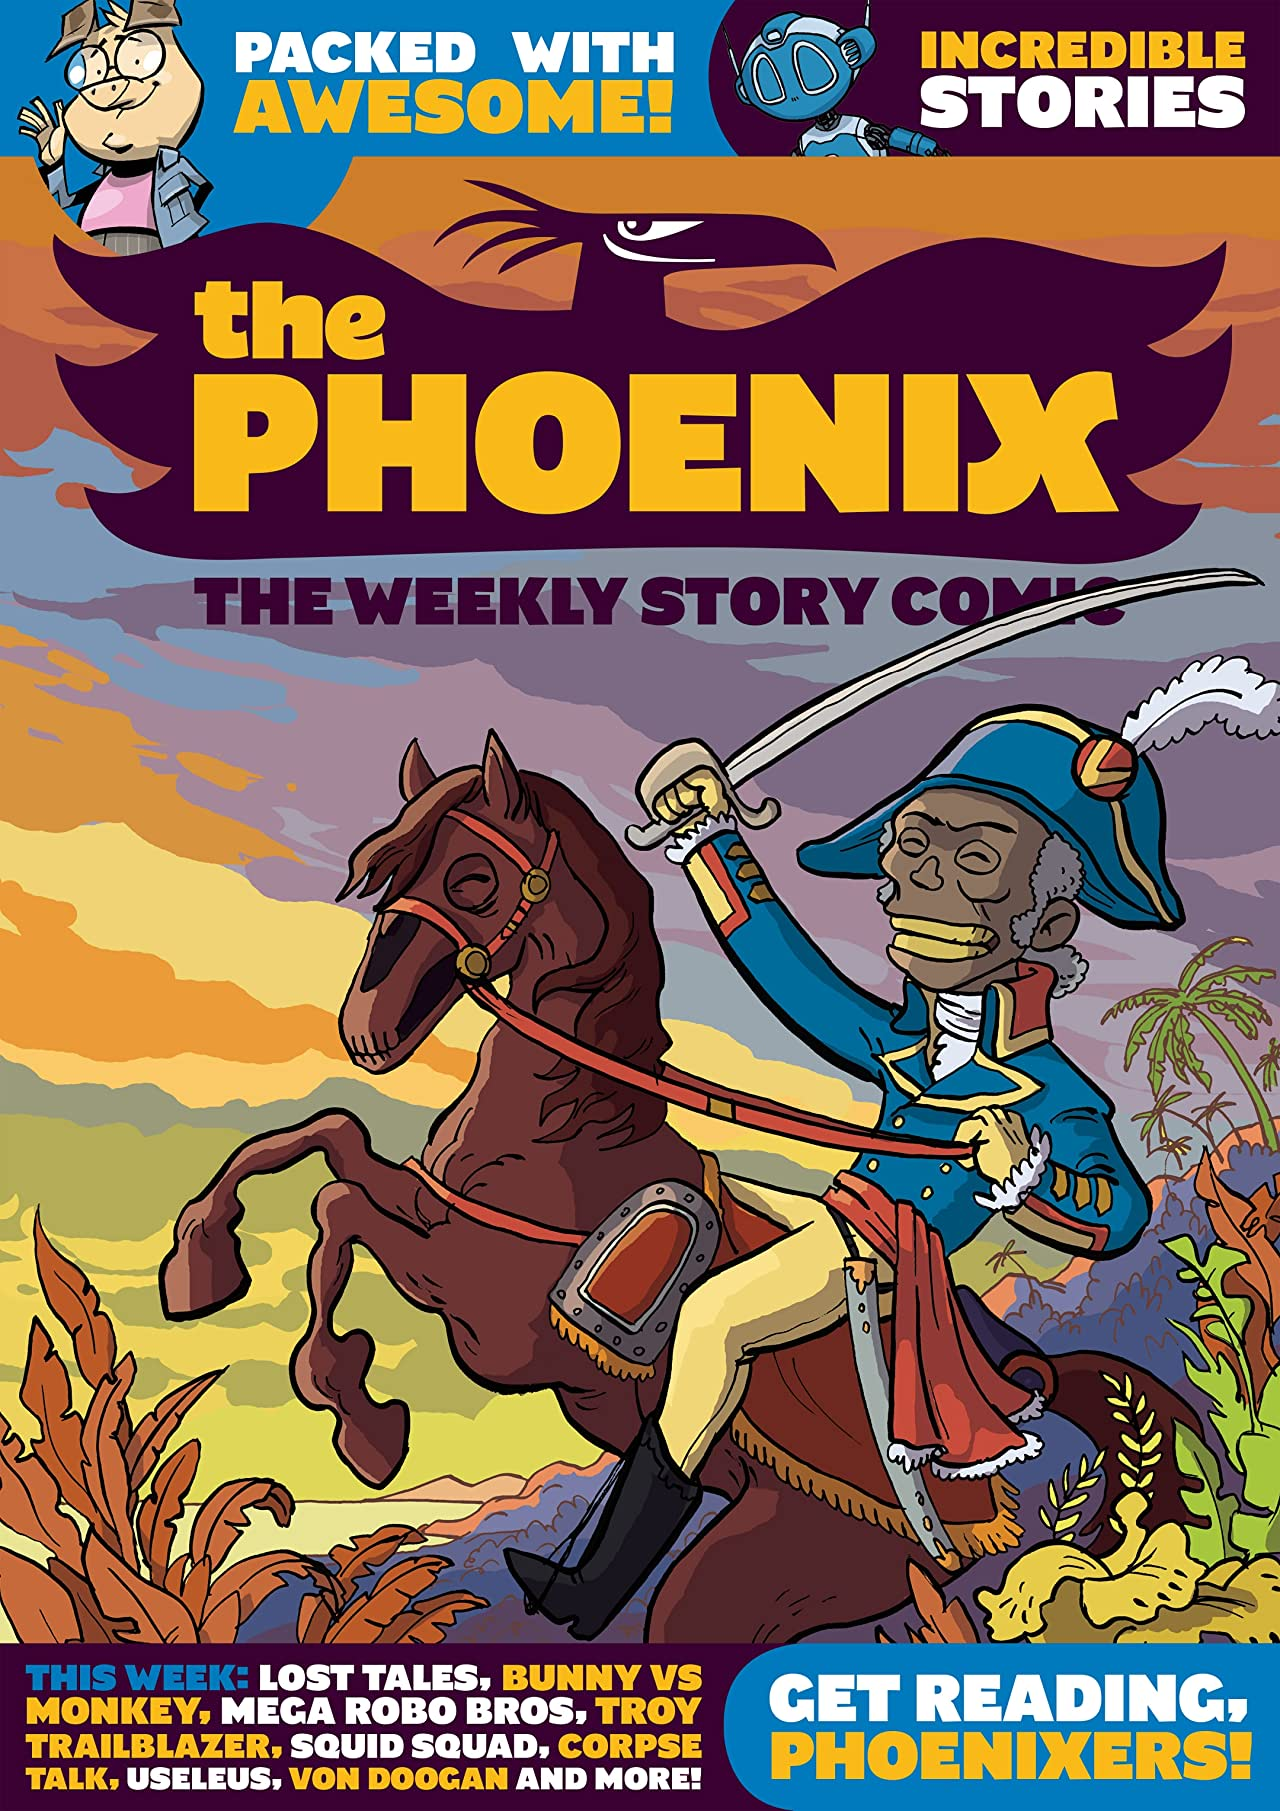 The Phoenix #151: The Weekly Story Comic